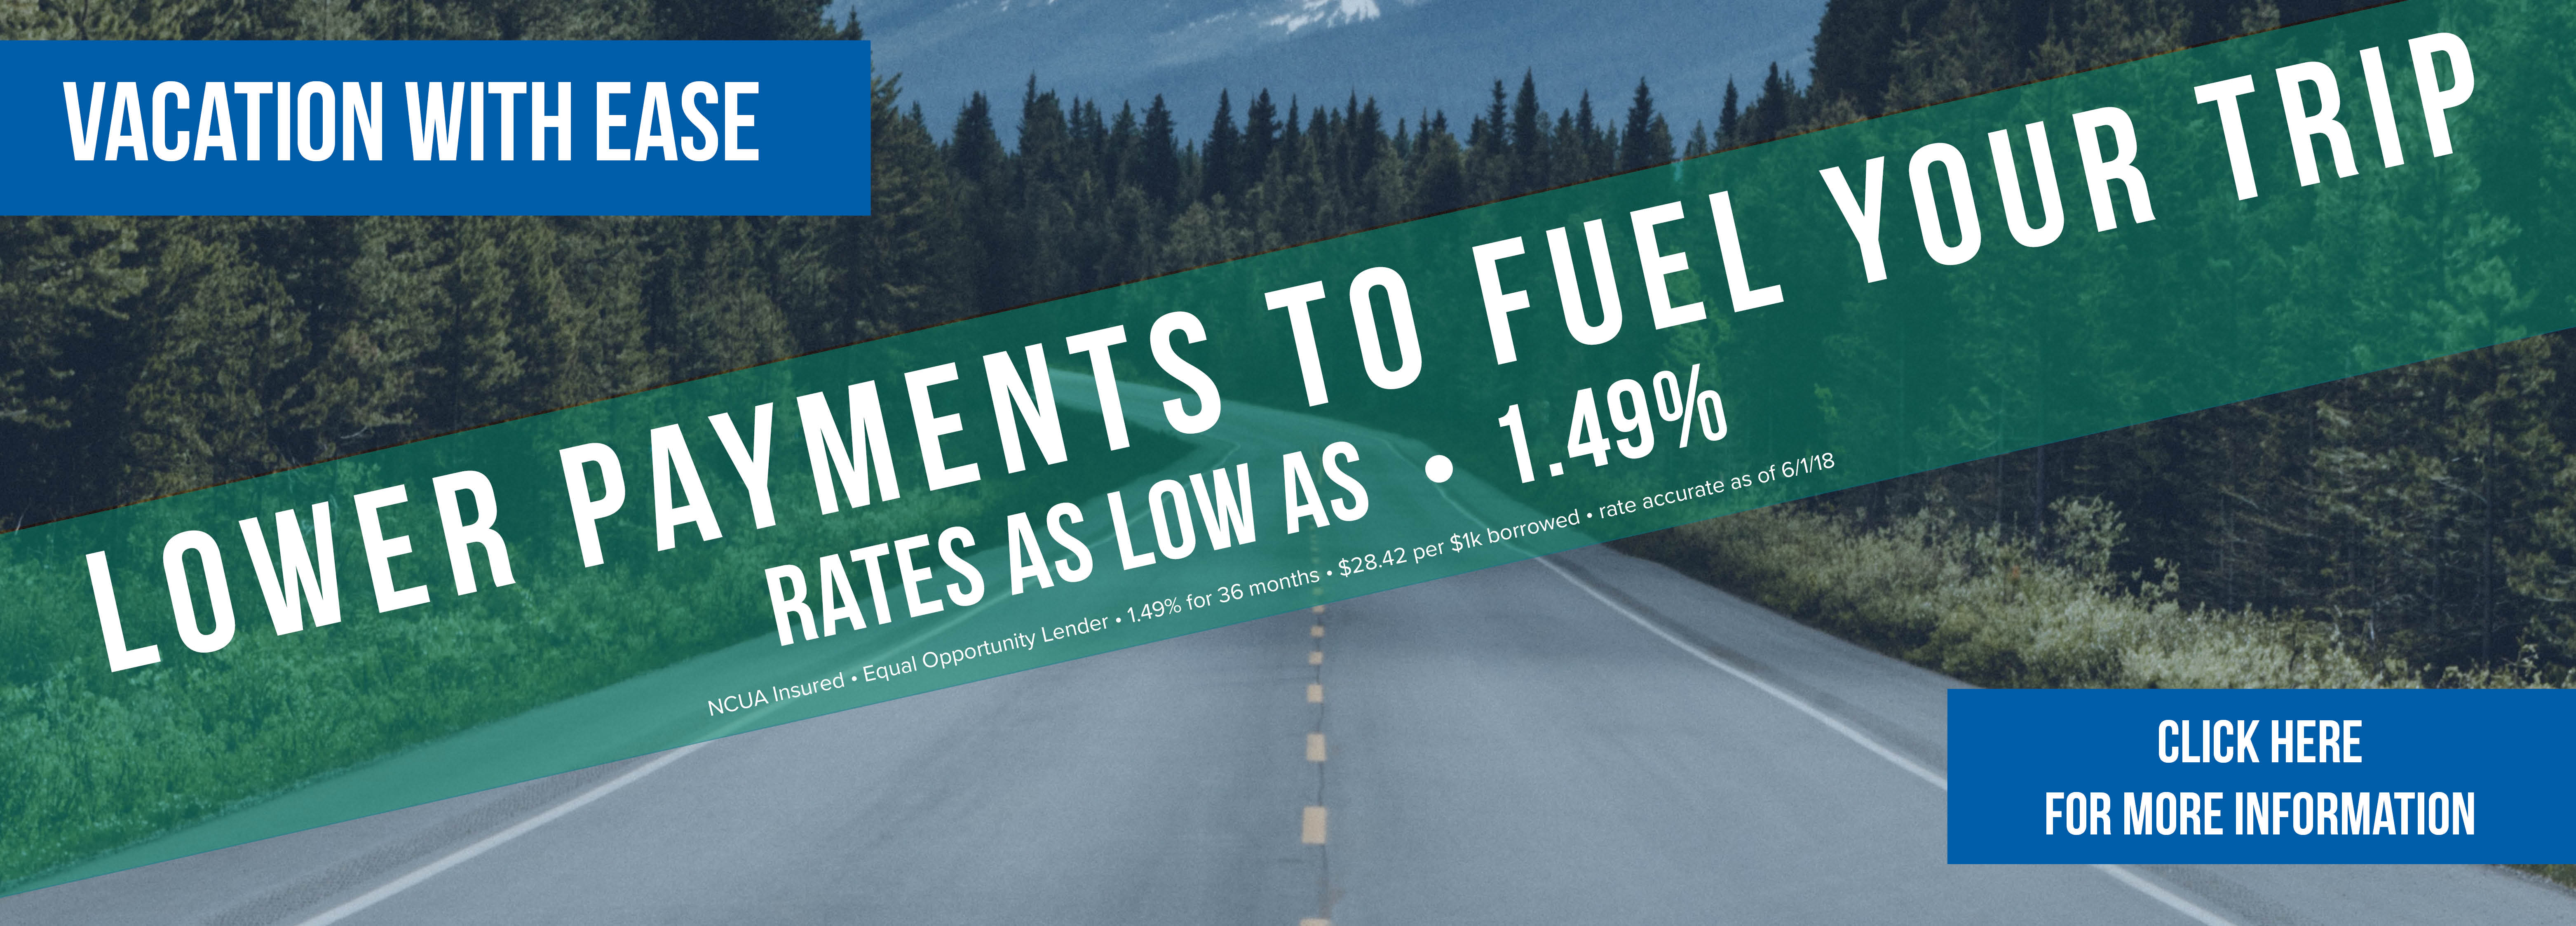 lower payments to fuel your trip